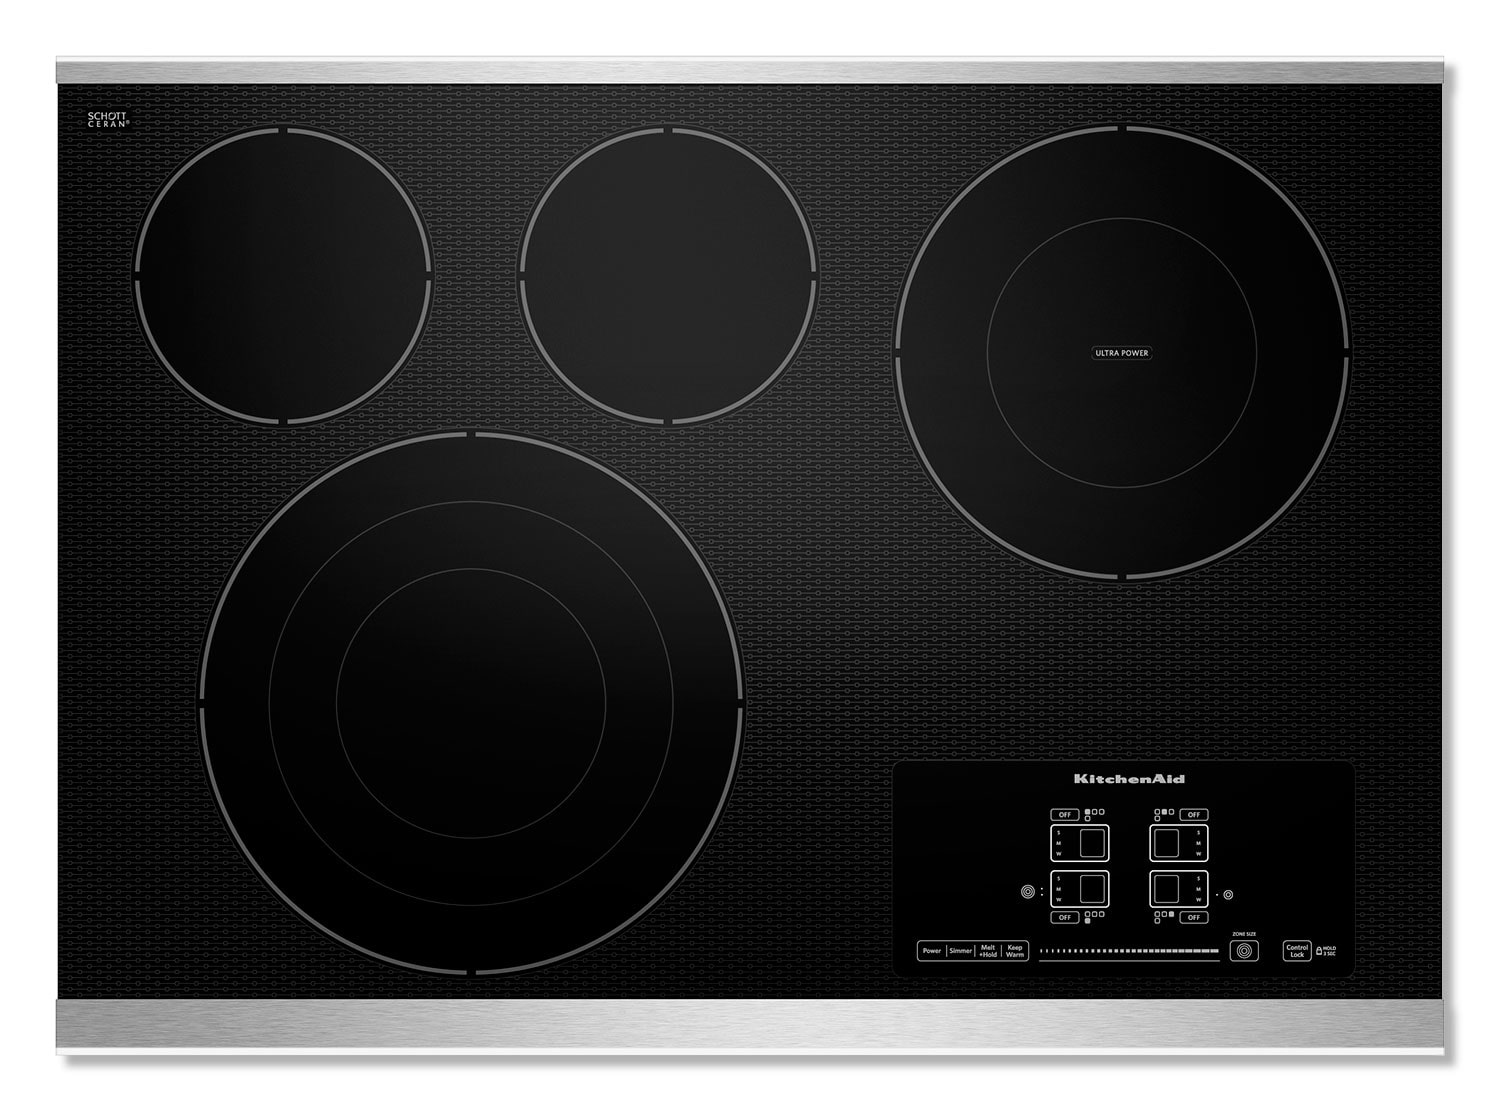 Cooking Products - KitchenAid Electric Cooktop KECC607BSS